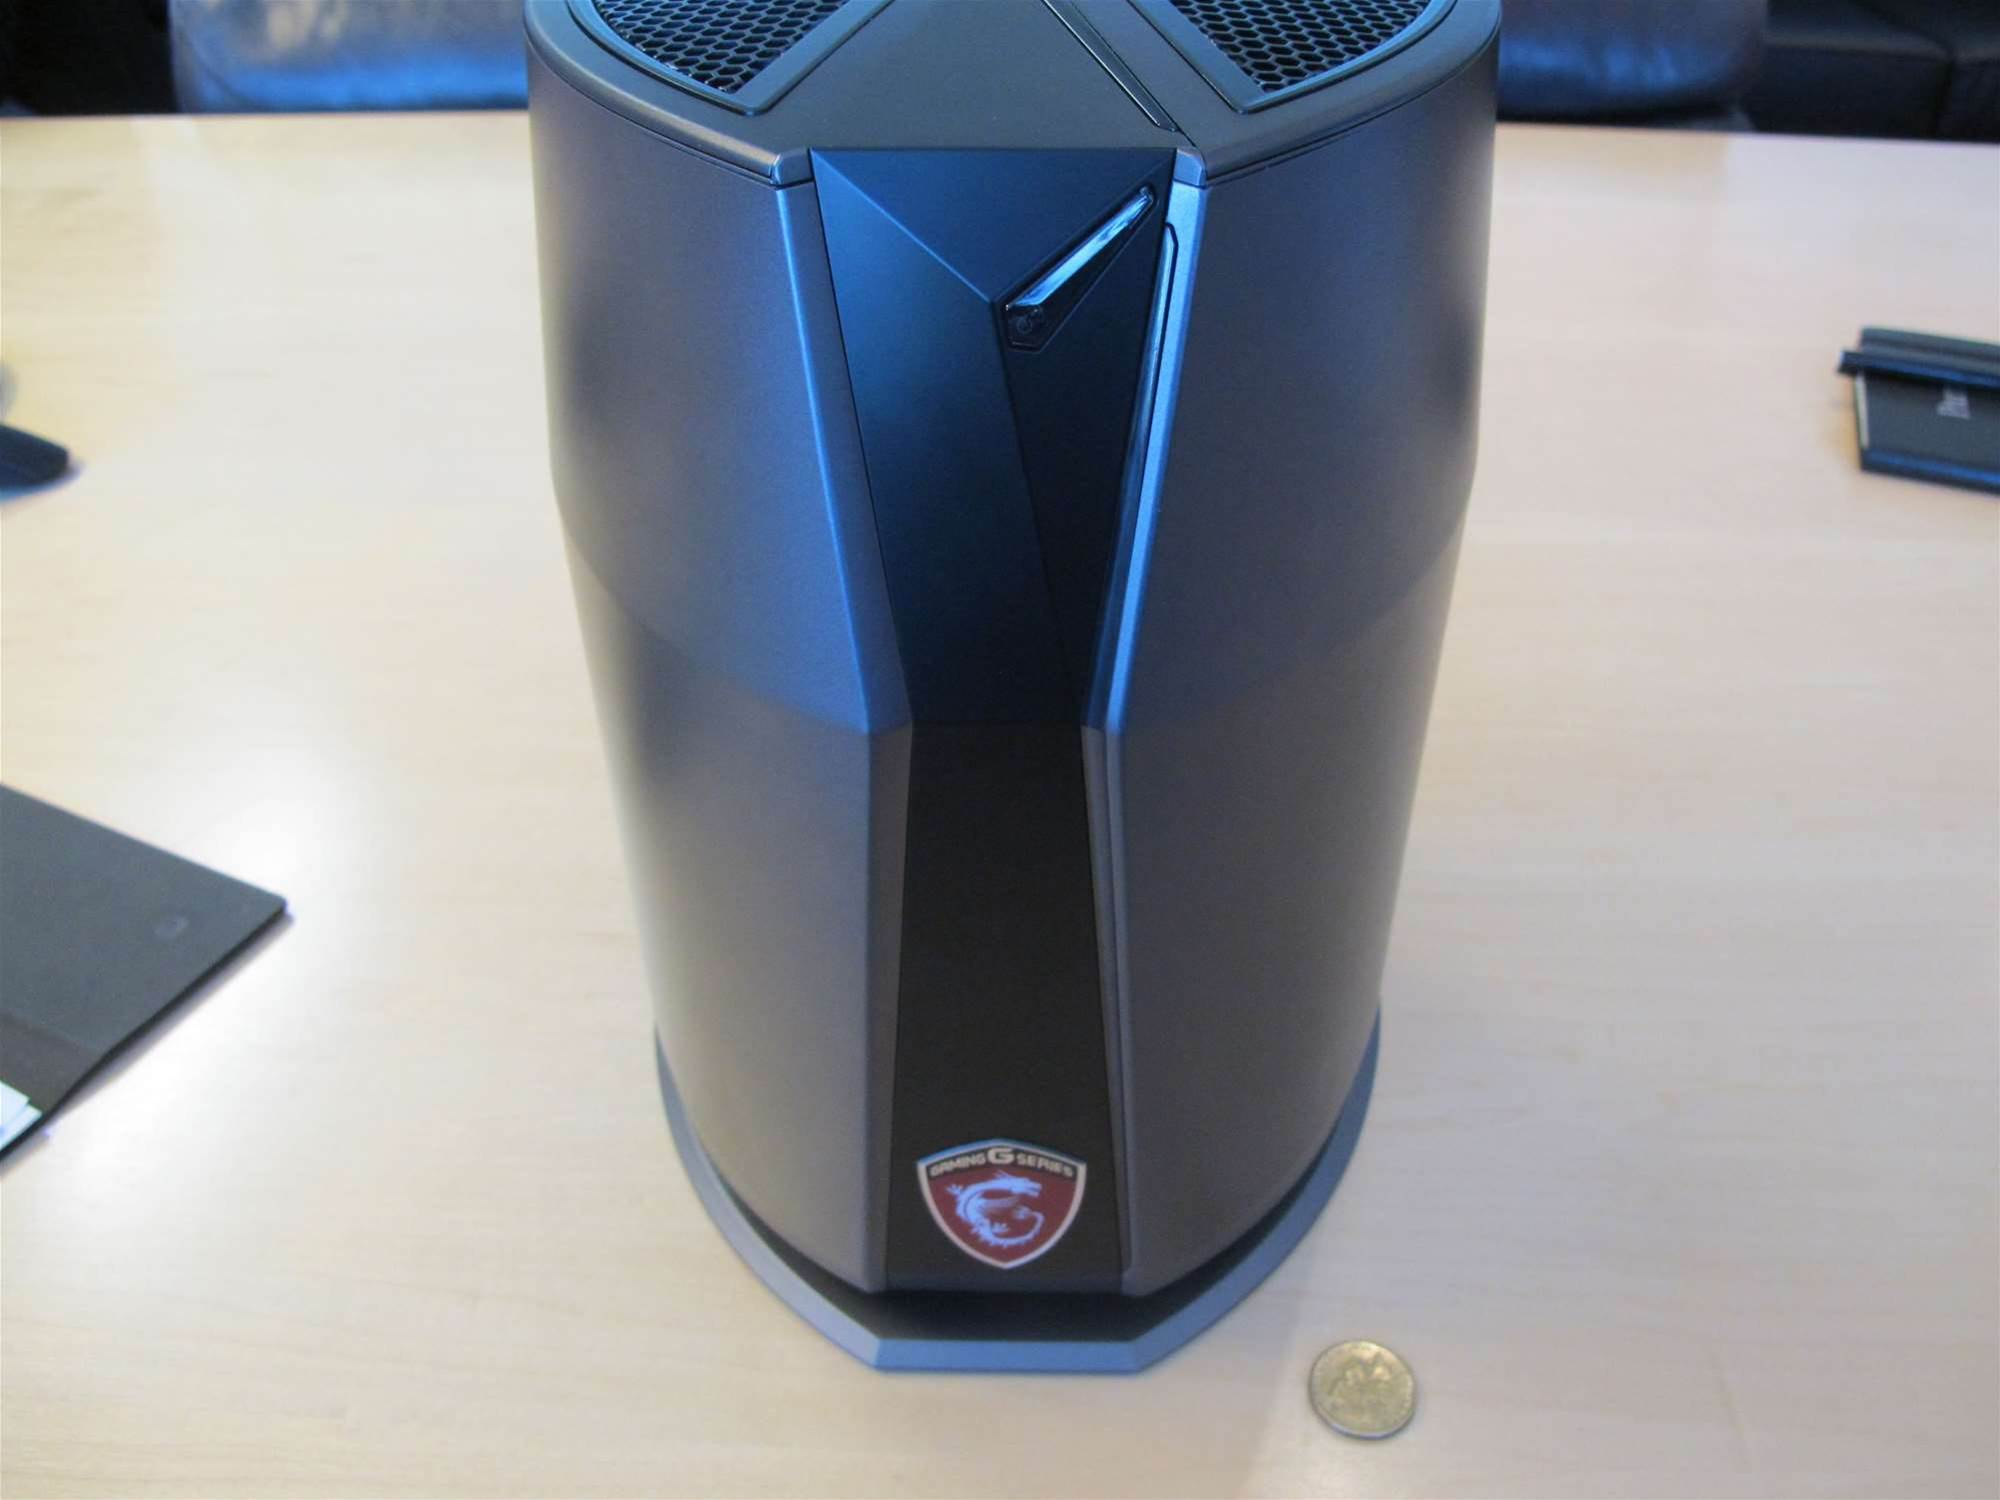 First Look: MSI Vortex gaming PC